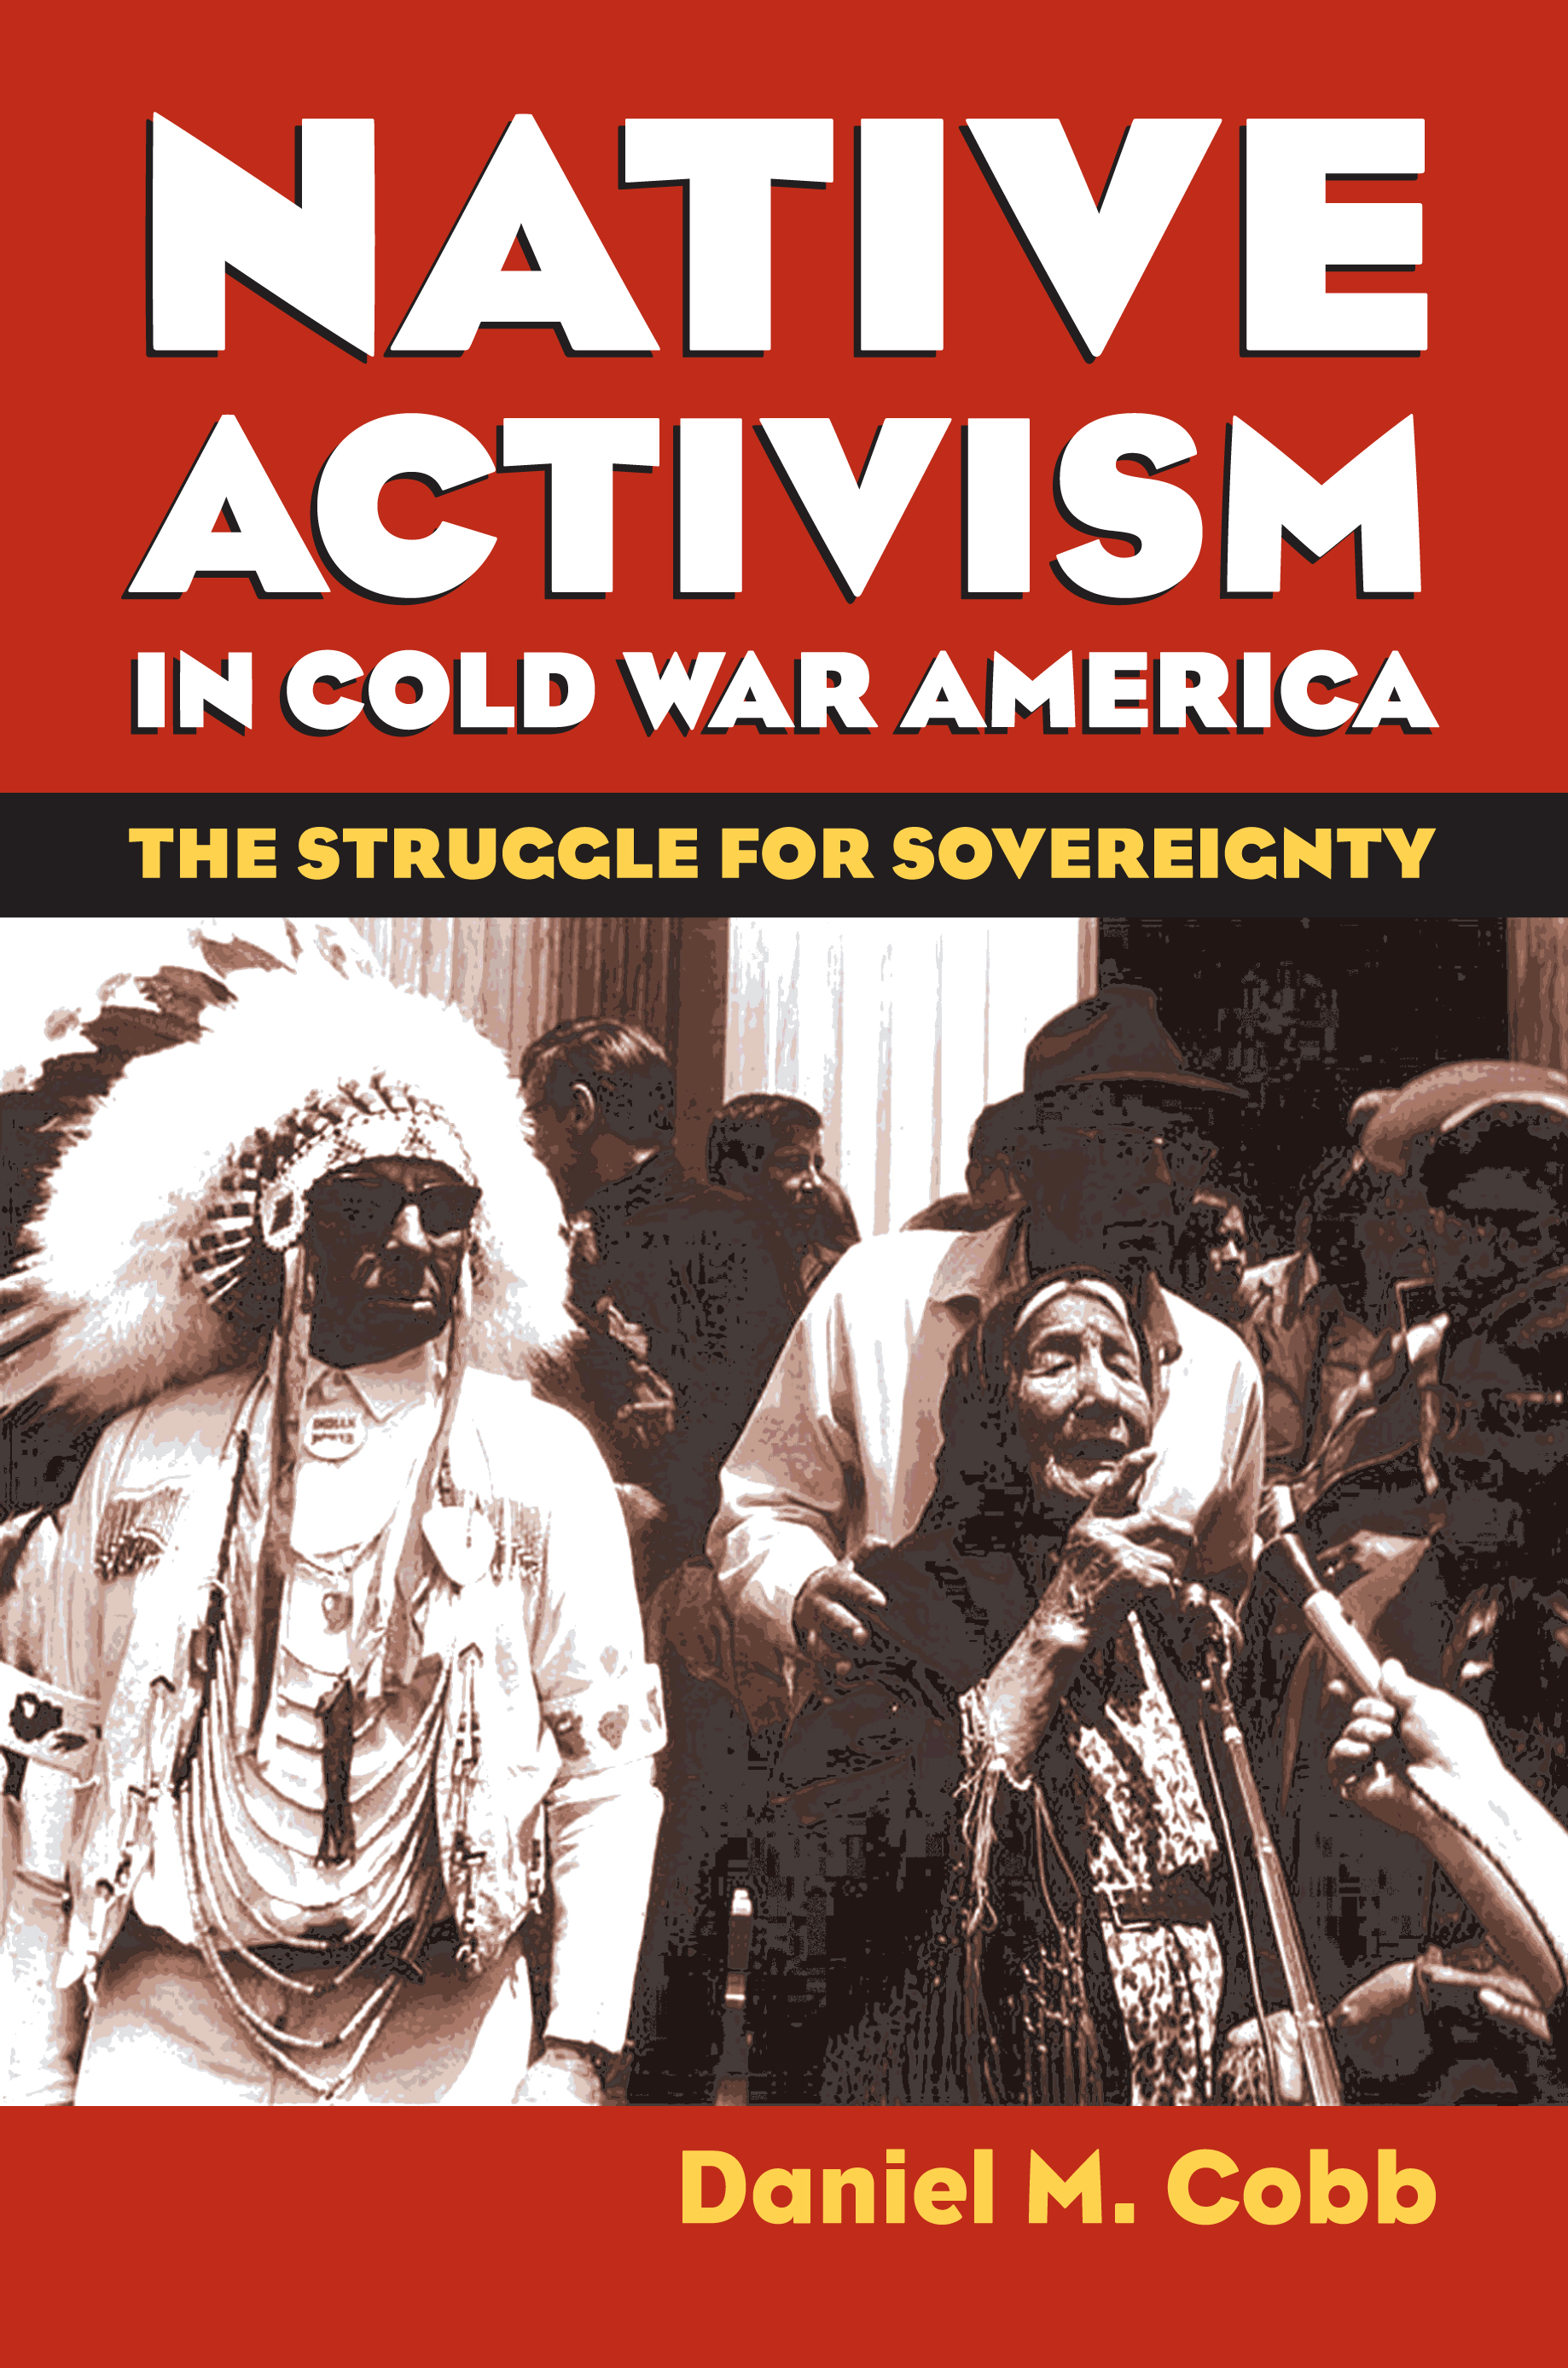 Image result for Native American social activism